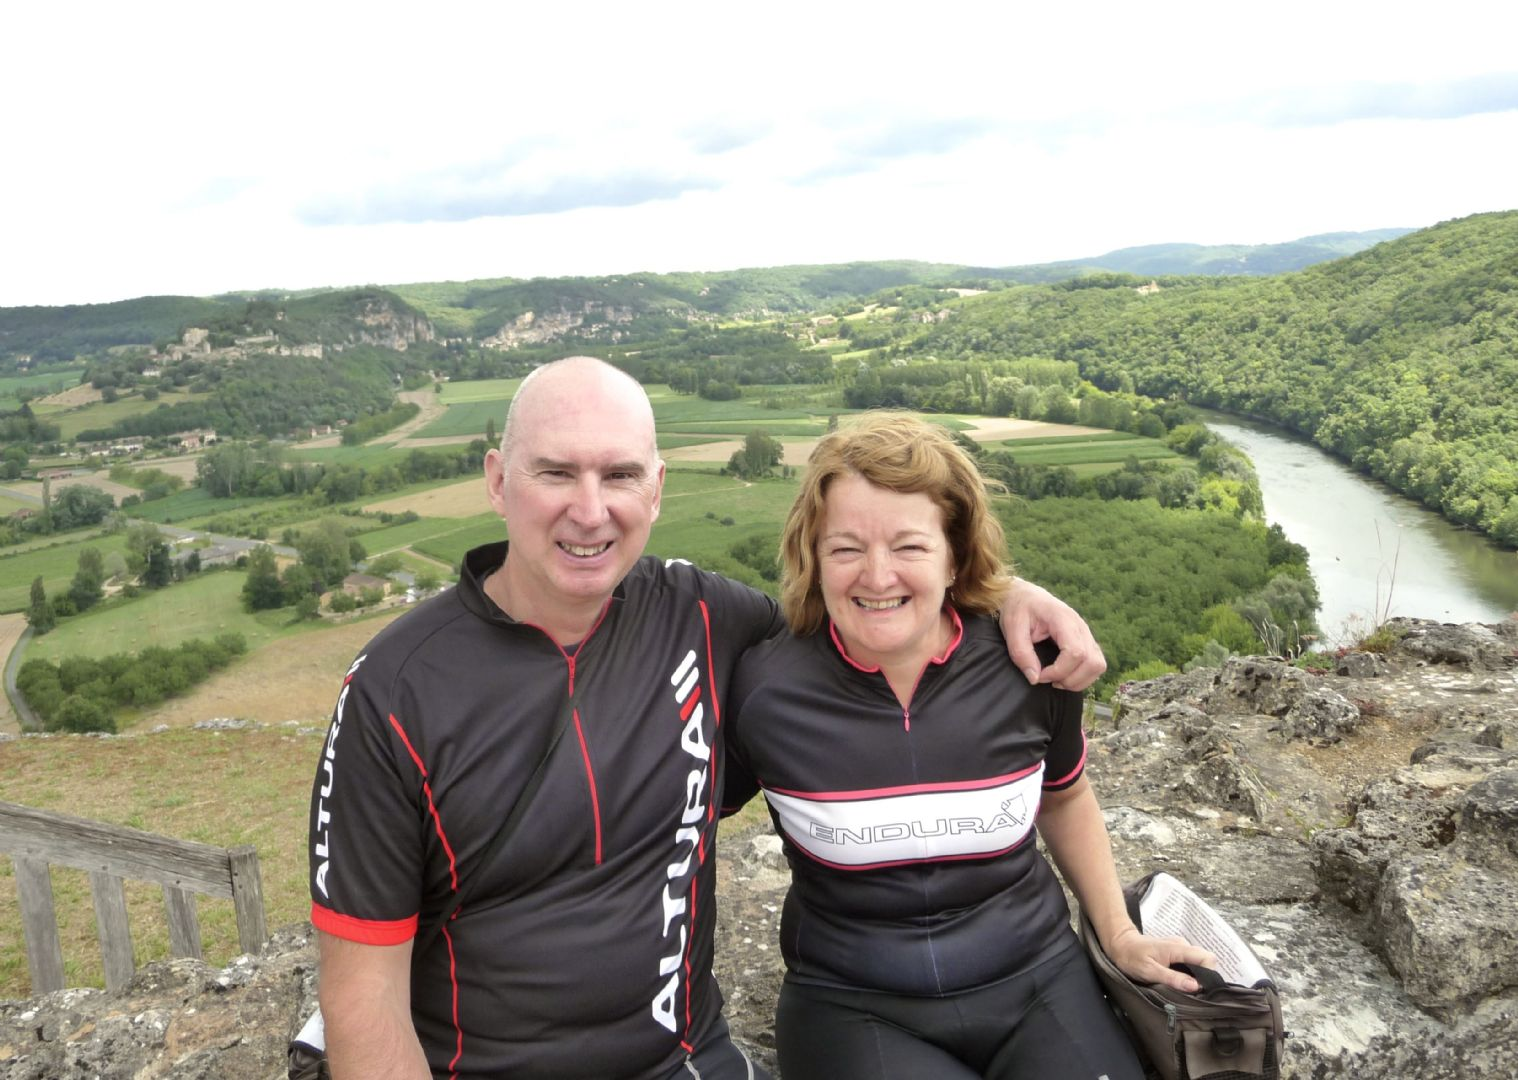 dordgonecycling2.jpg - France - Dordogne Delights - Self-Guided Leisure Cycling Holiday - Leisure Cycling